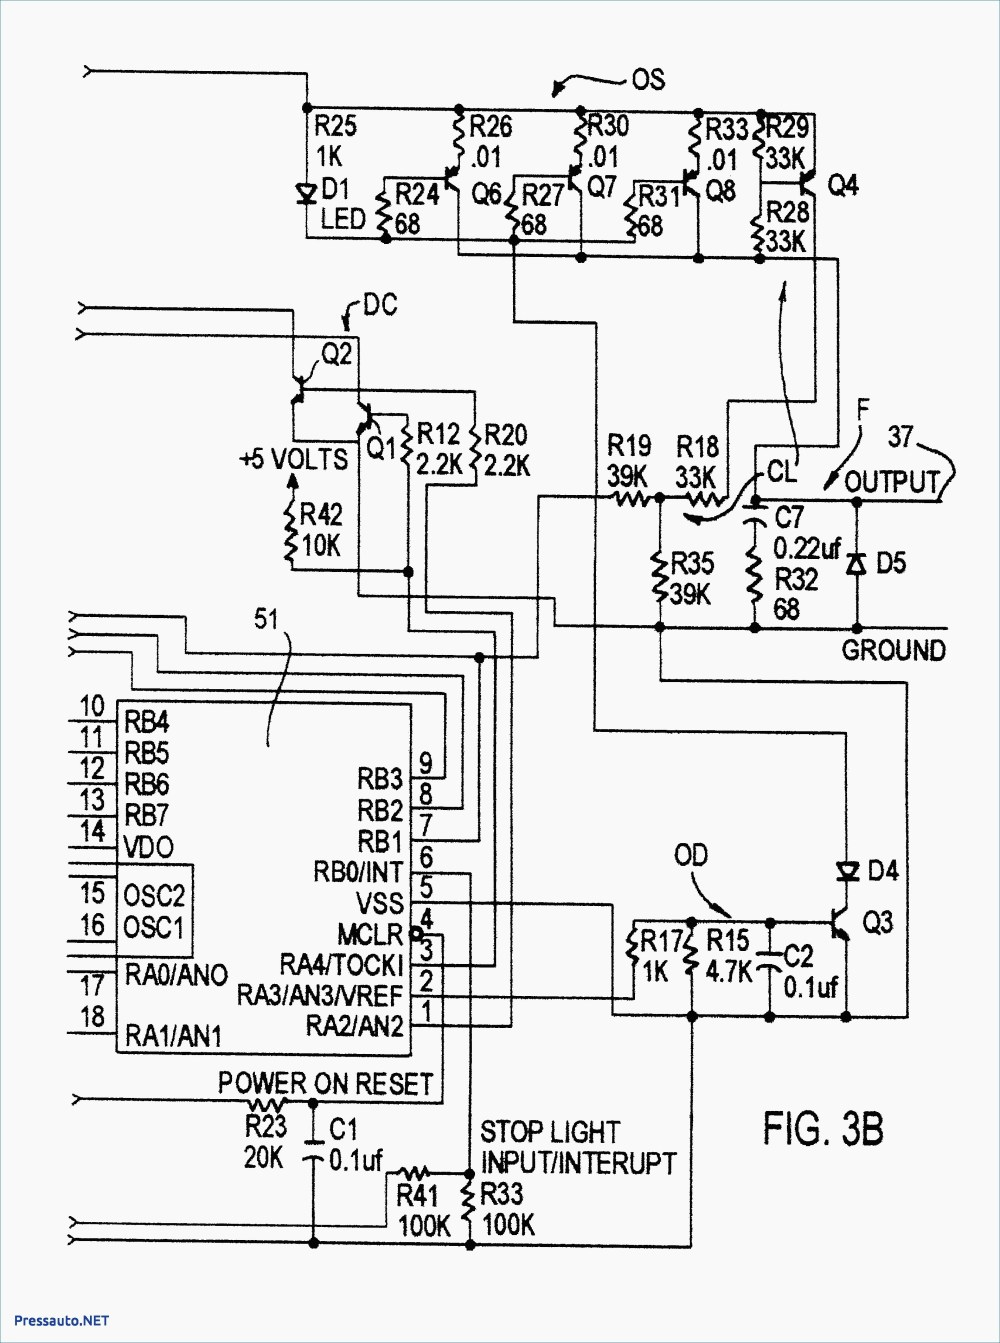 medium resolution of mitsubishi wiring schematic wiring library diagram z2fuso fg parts diagram wiring diagram mitsubishi lancer wiring mitsubishi